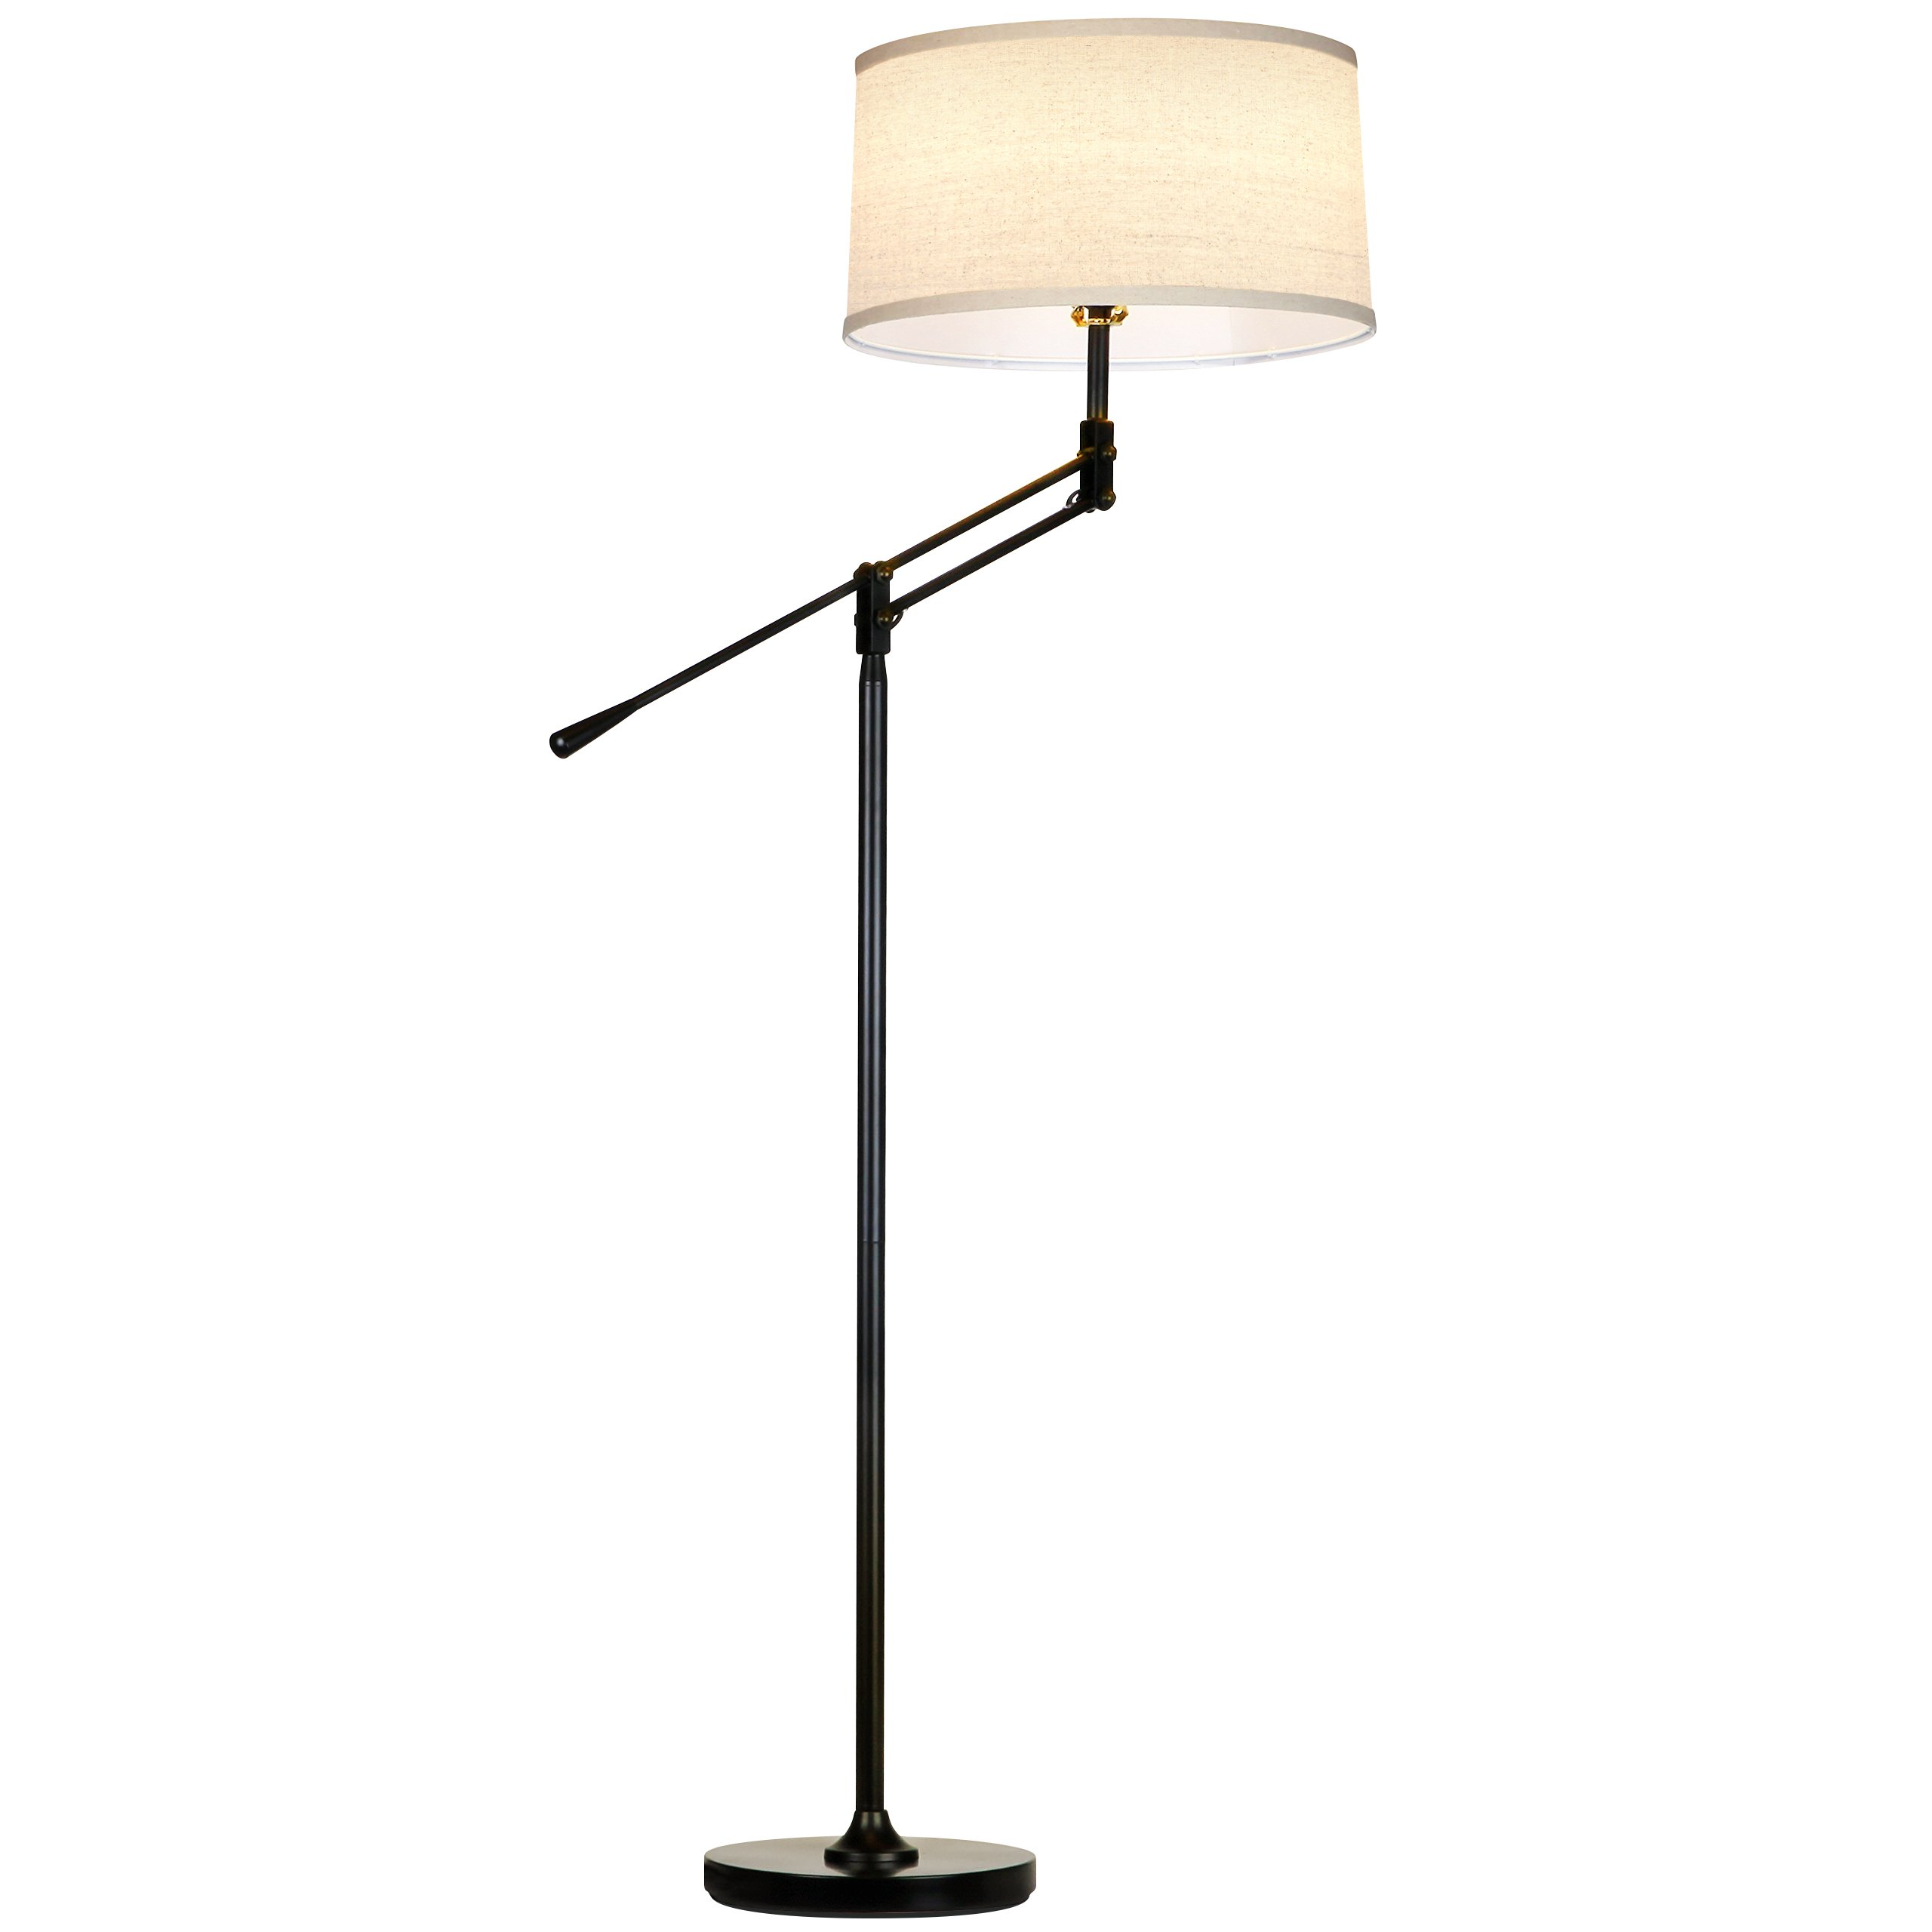 Brightech Ava LED Floor Lamp - Living Room, Office and Bedroom Standing Tall Pole Light with Adjustable Uplight and Downlight - Alexa, Echo Compatible, Classic